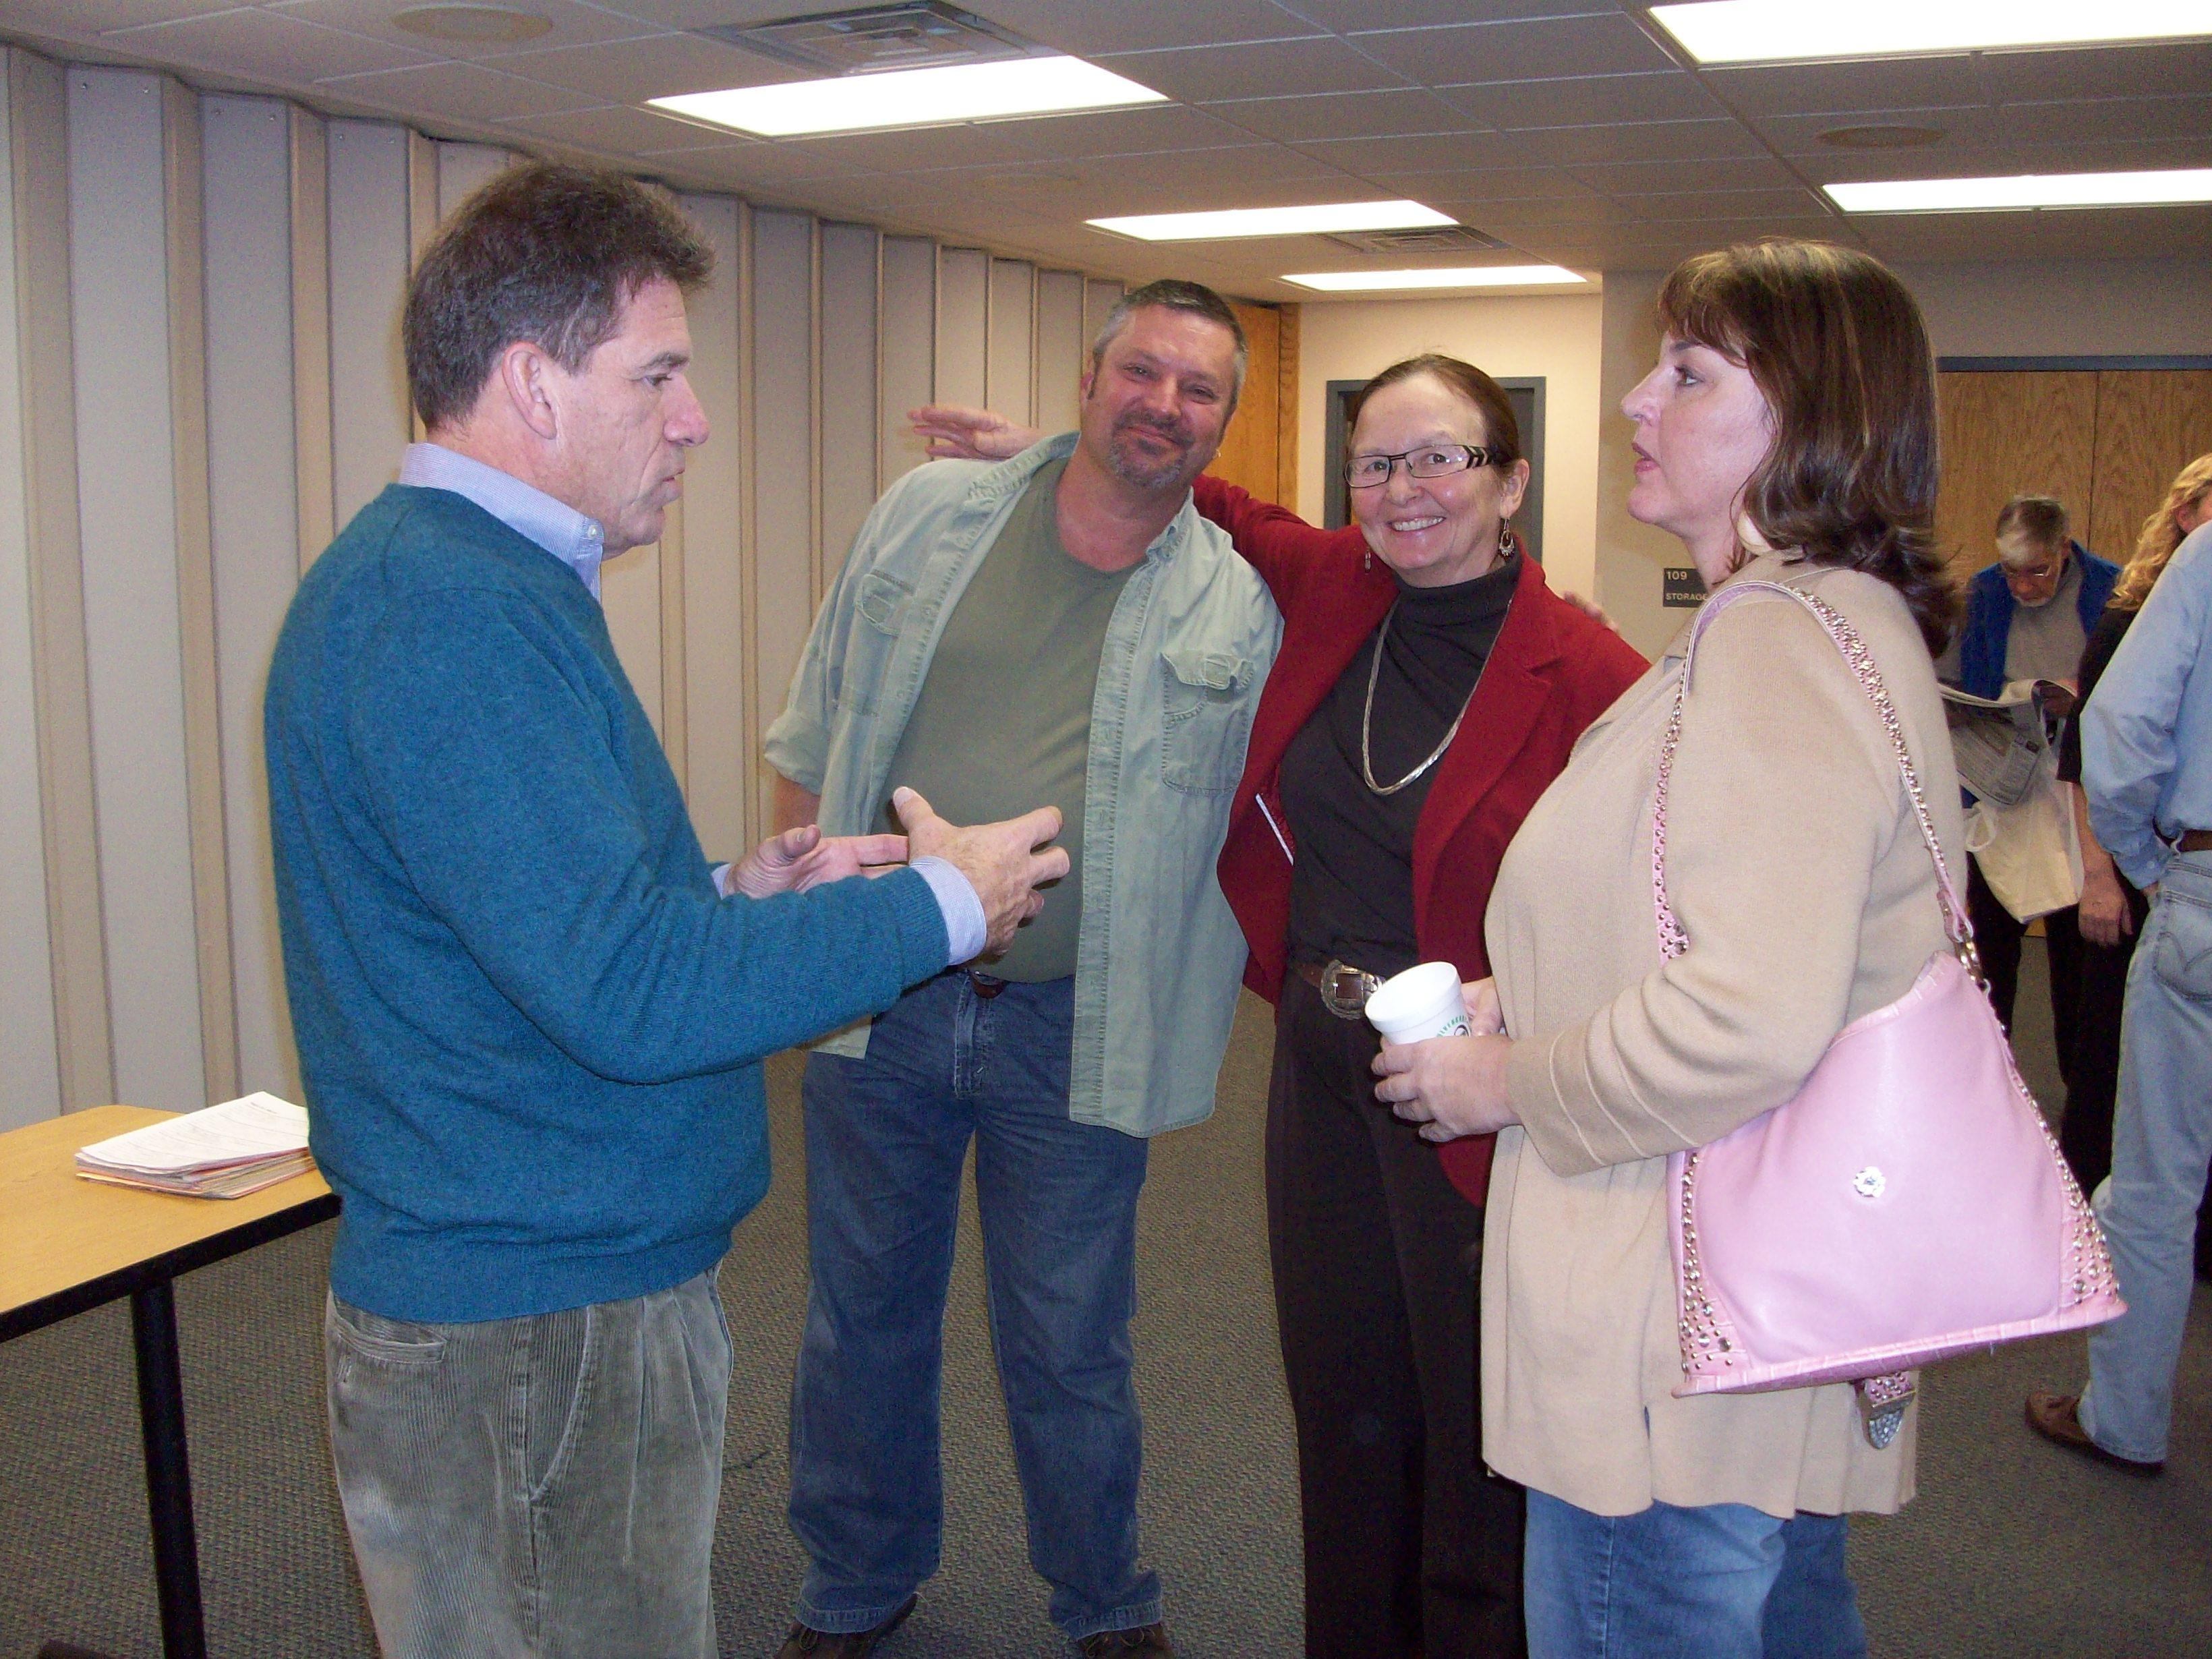 from left:Mark Ritchie, Dan Tokach, Sarah Vogel and April Fairfield